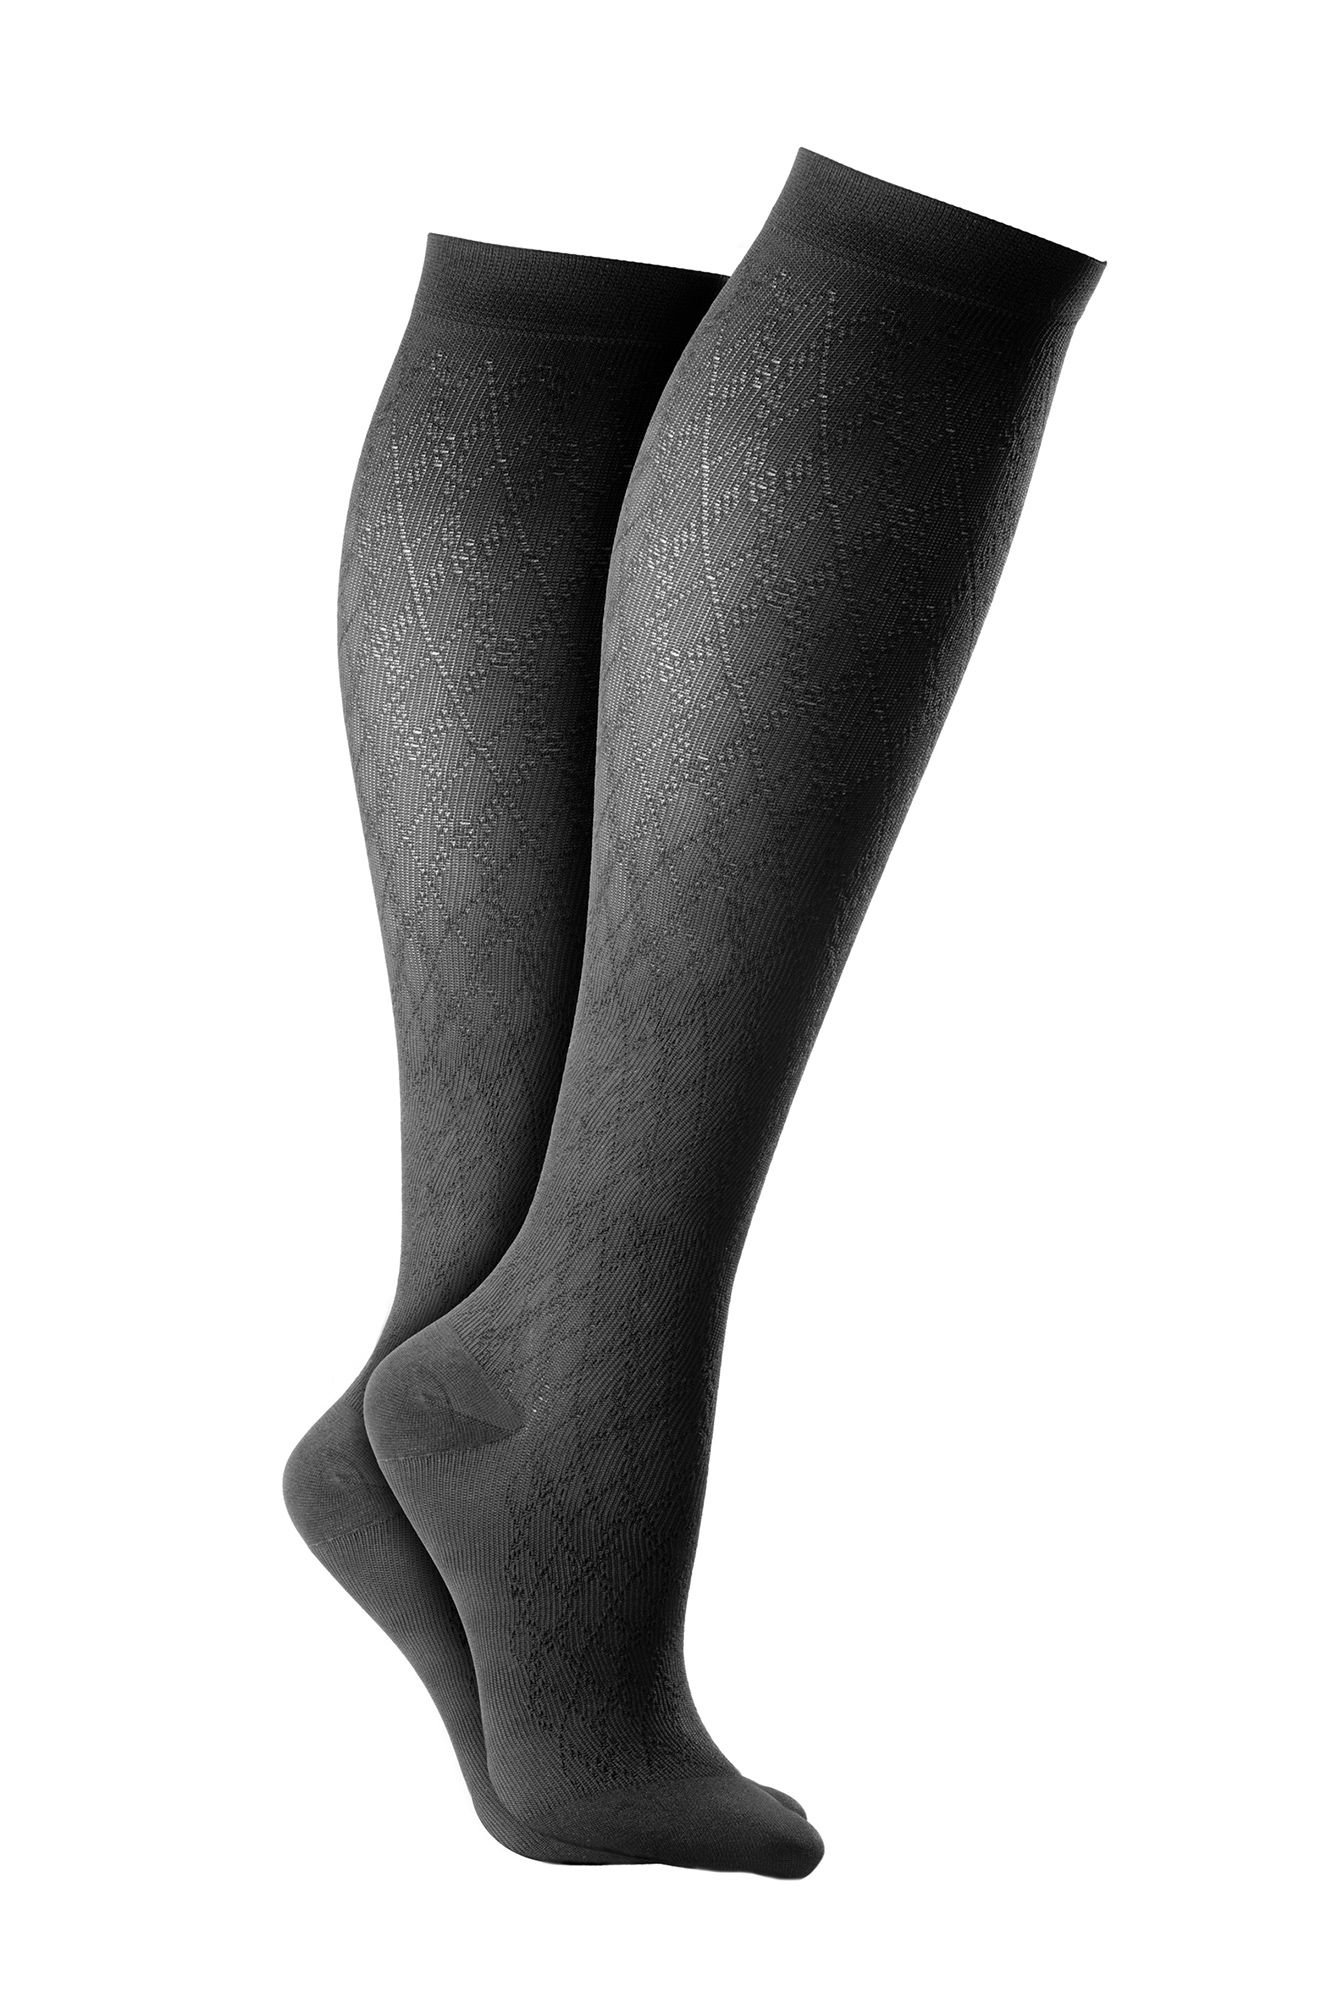 b8a71cae5f Activa Class 1 Unisex Patterned Support Socks - Daylong